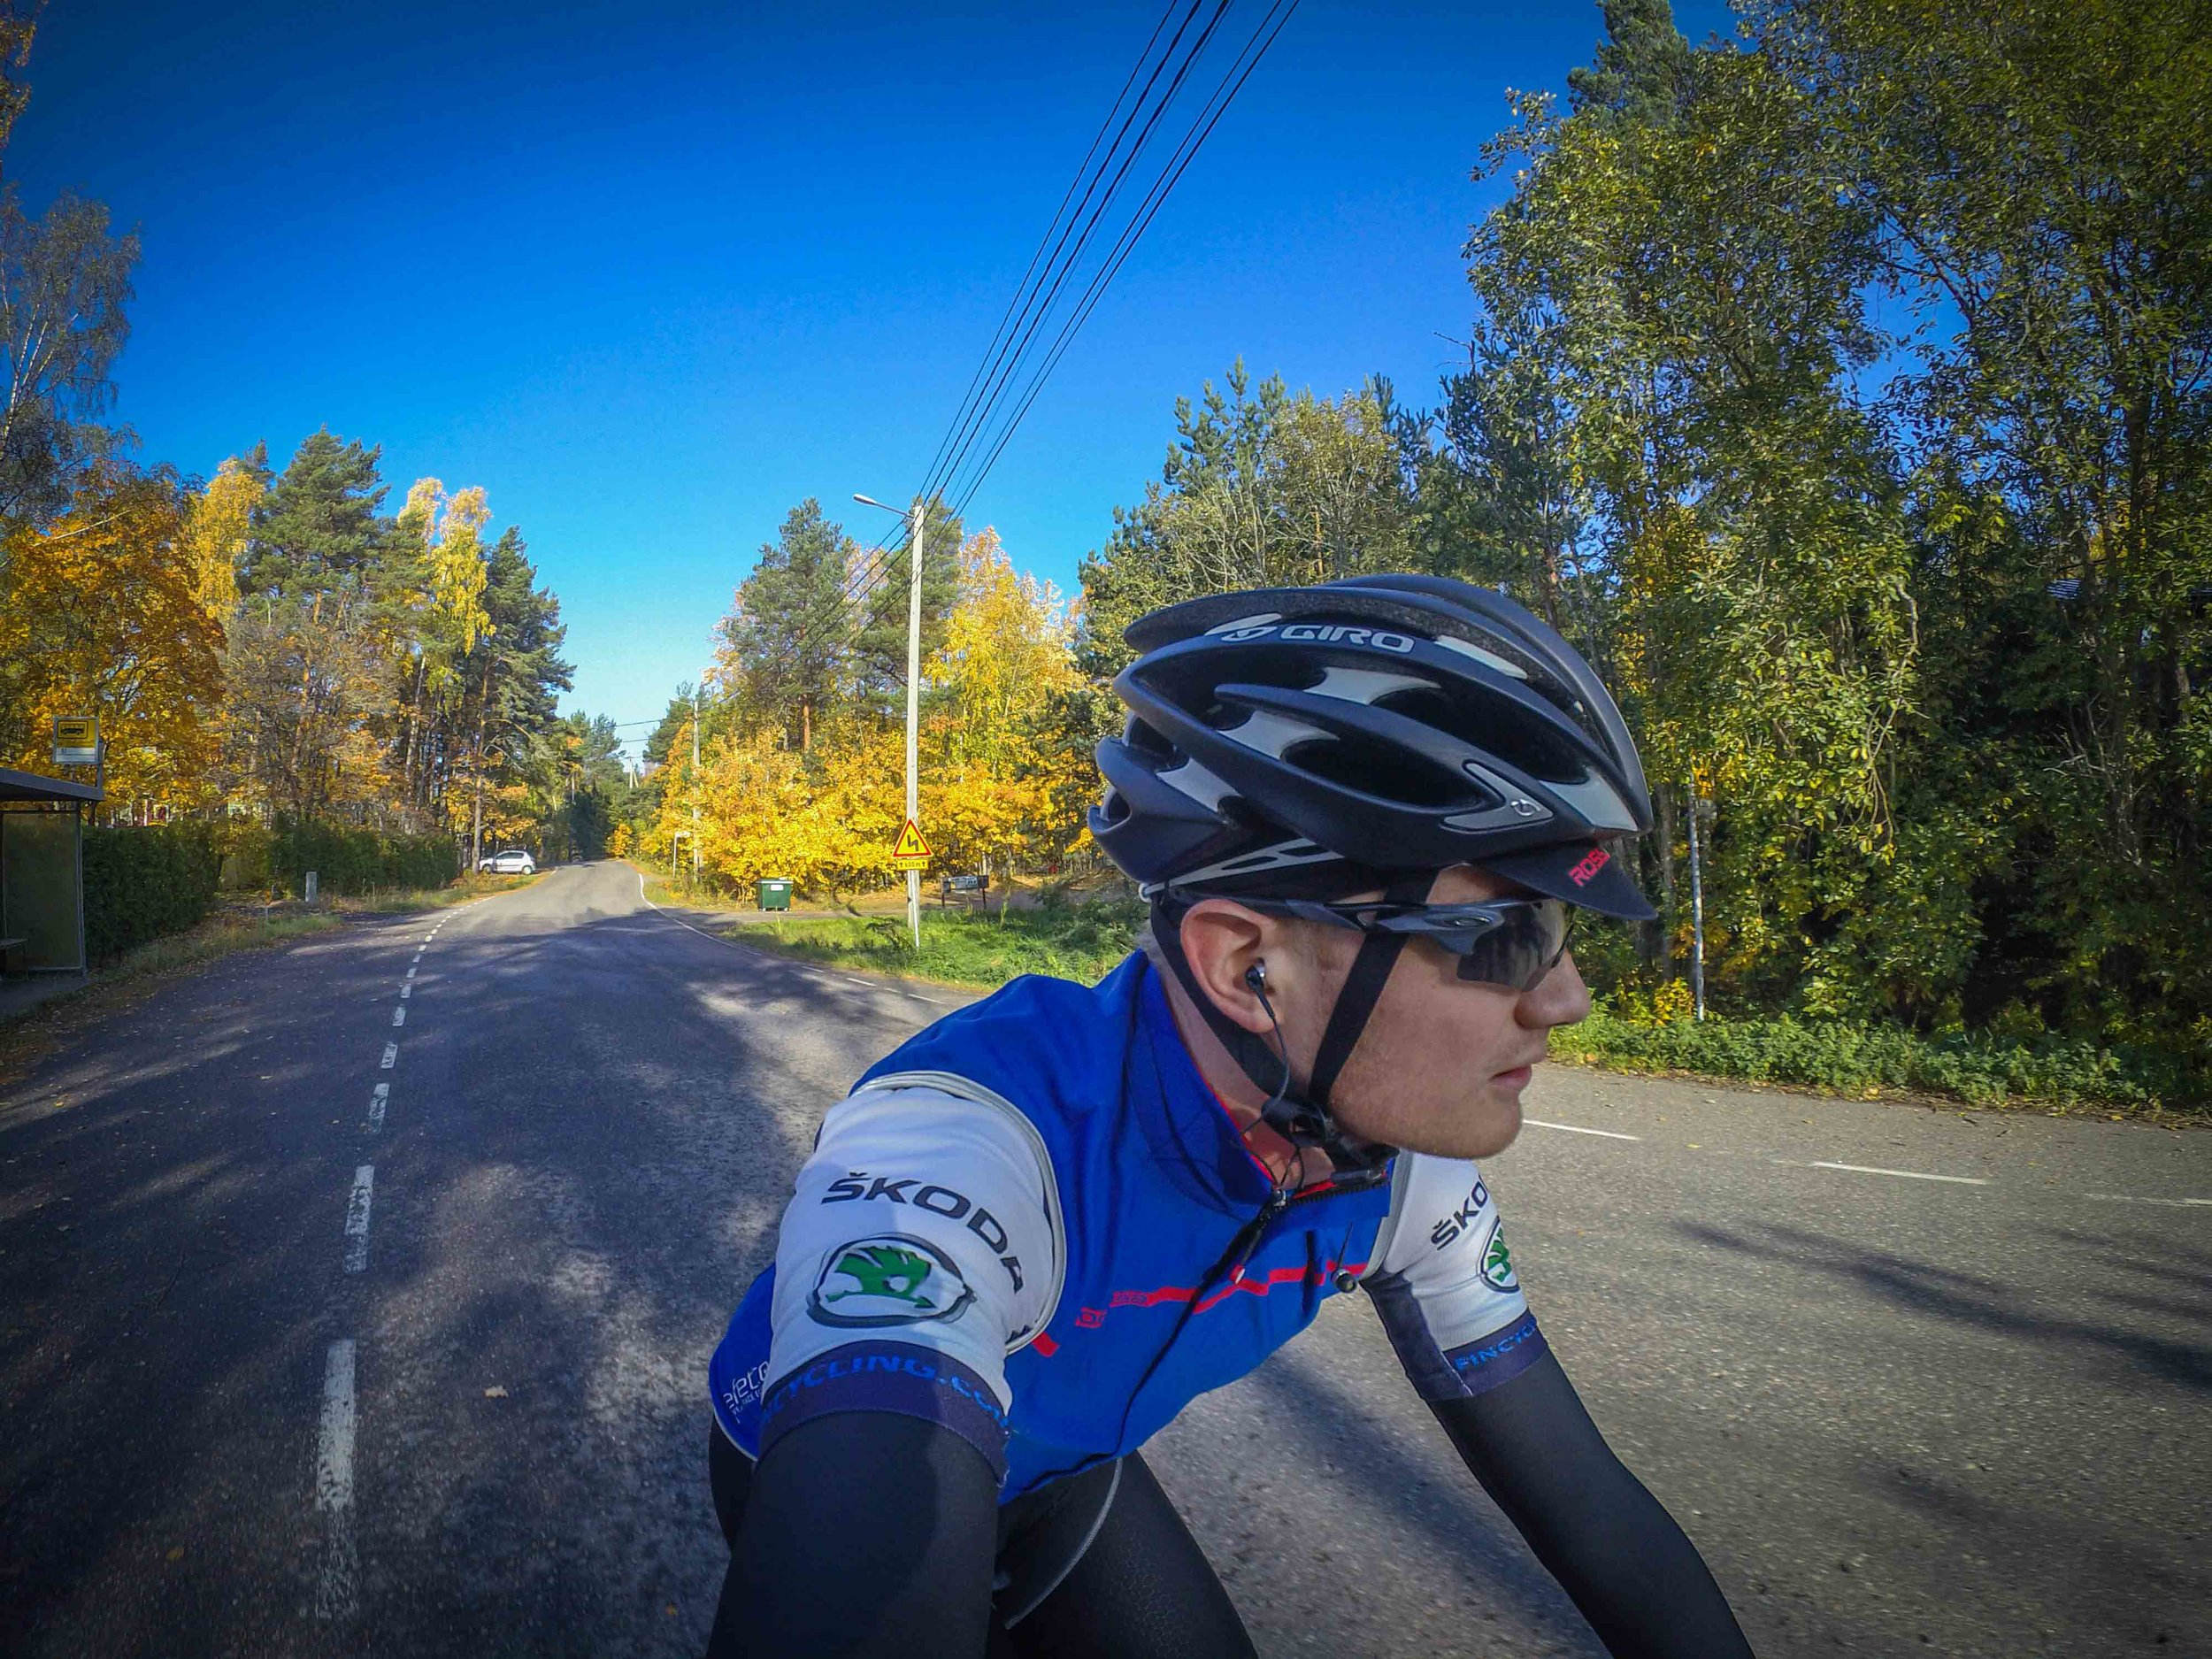 Last ride outdoors for 2018 was ridden October 14th